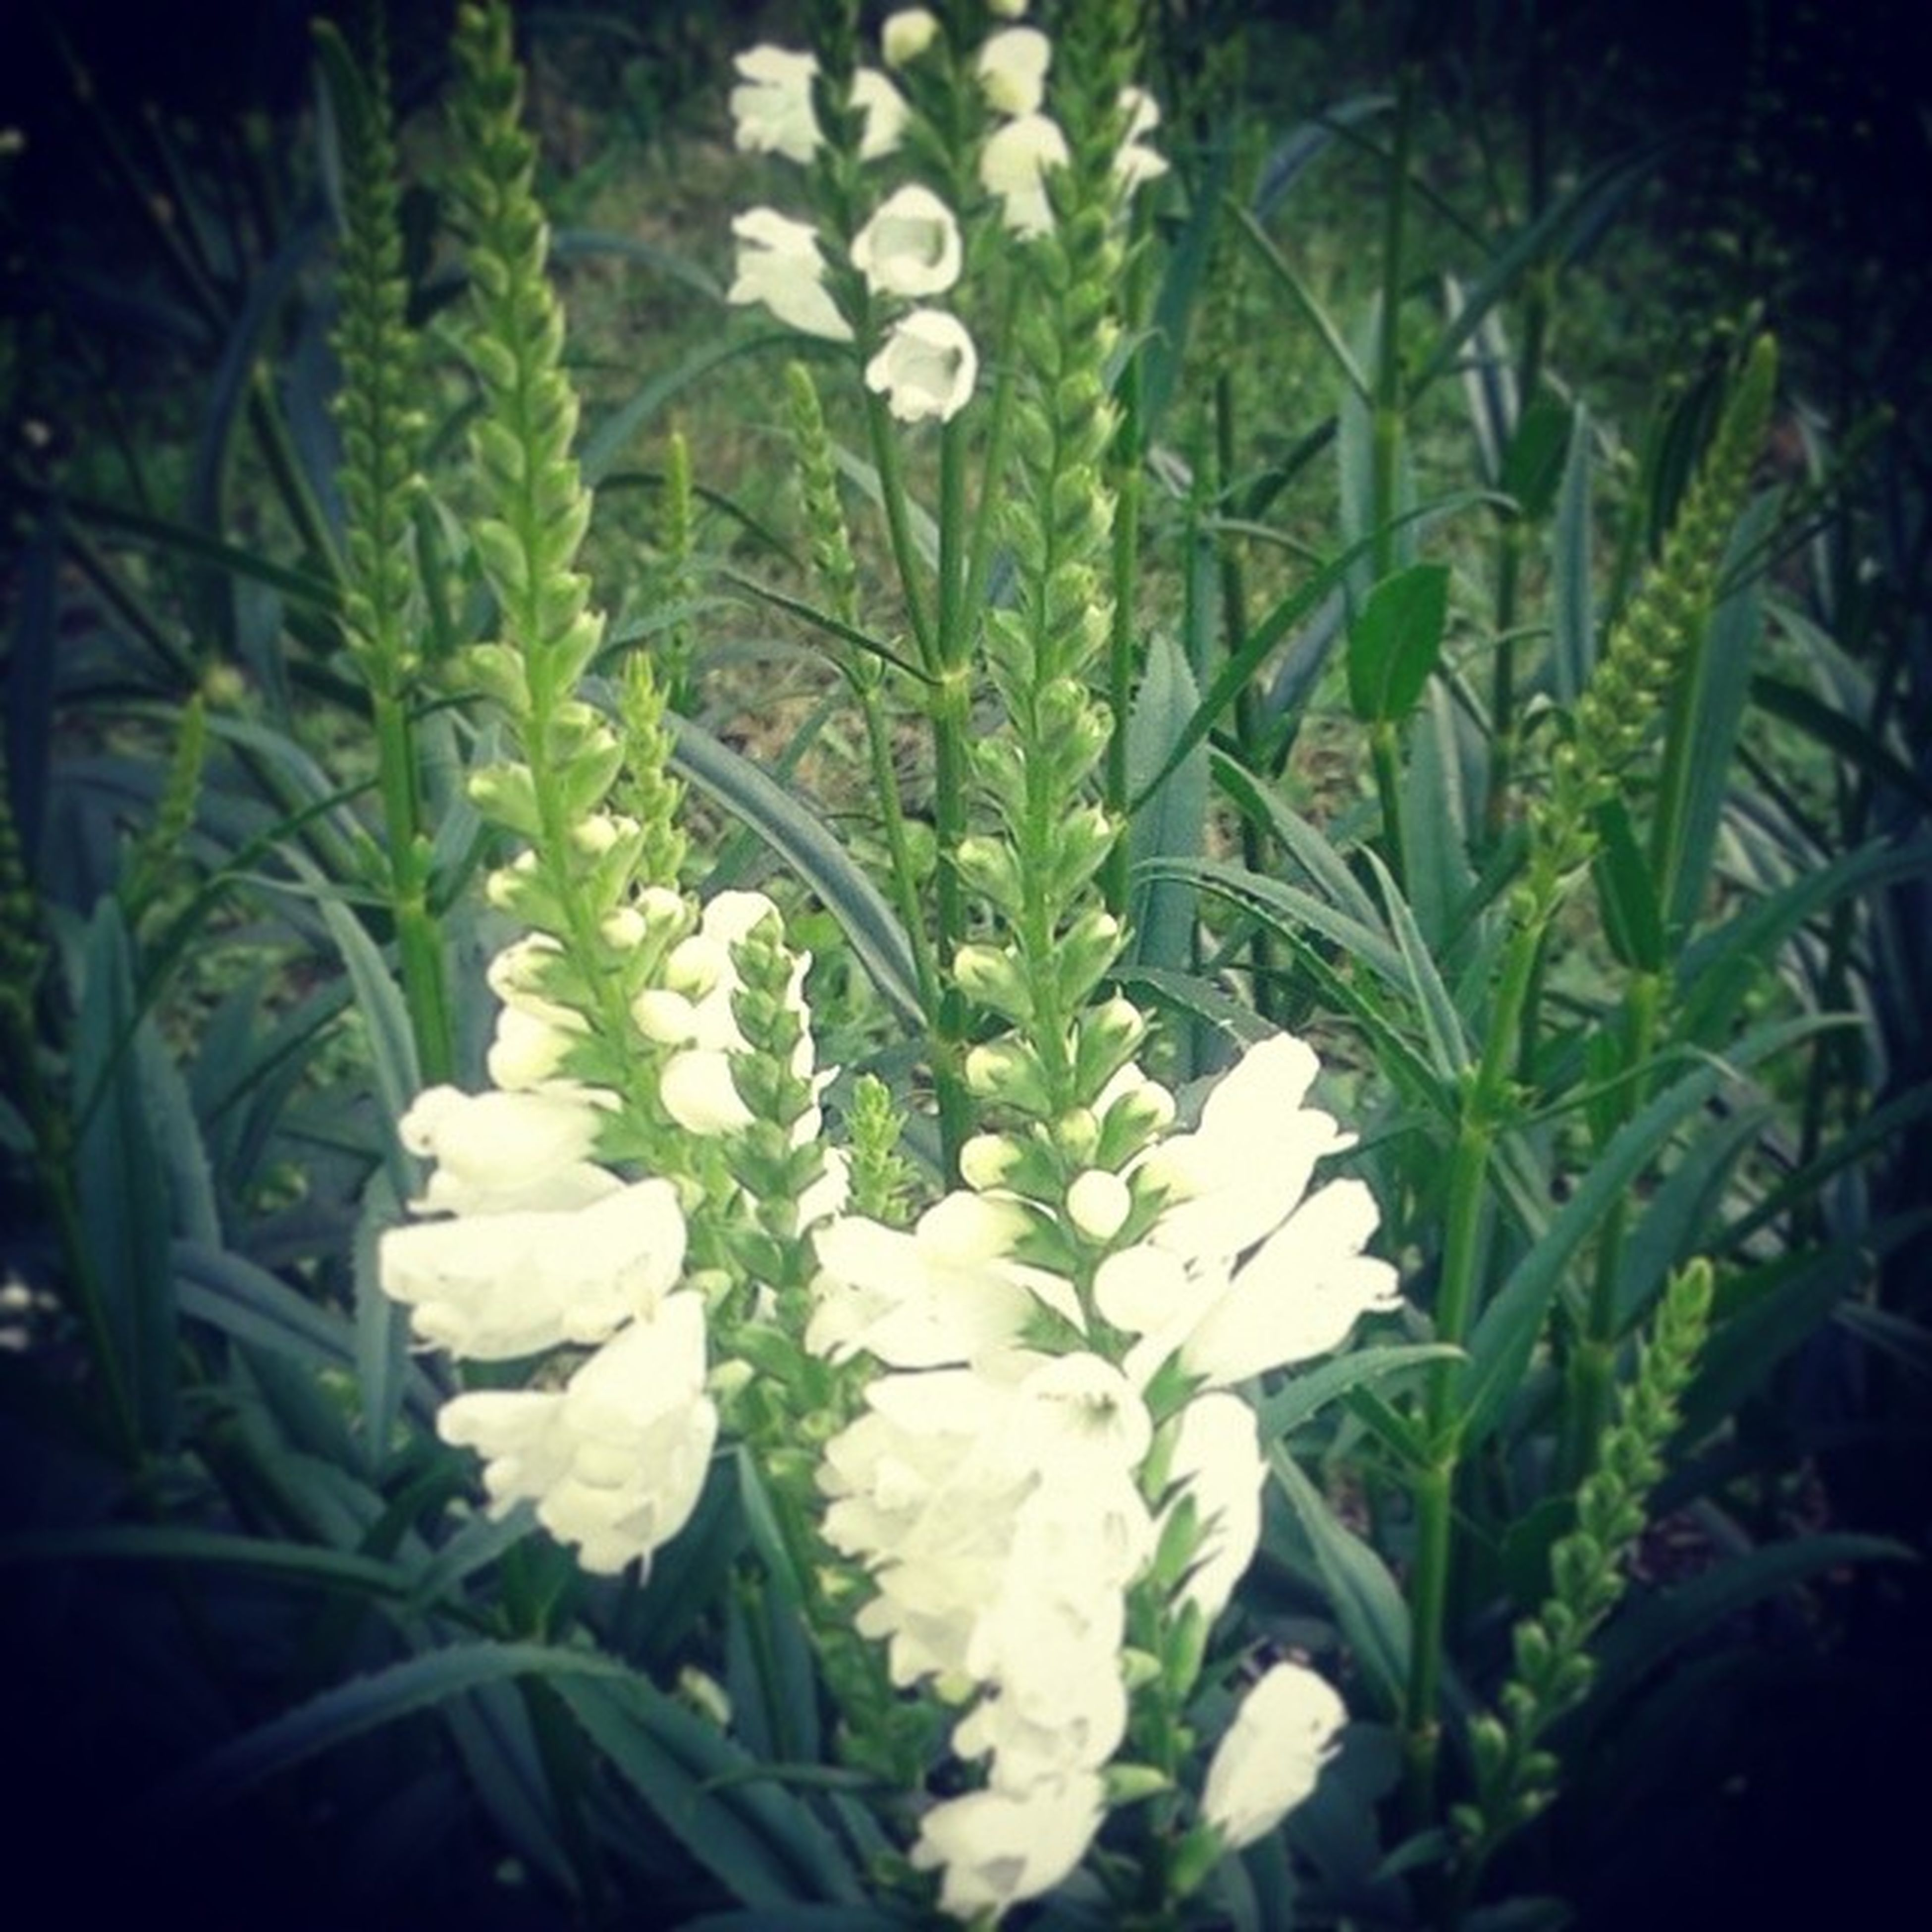 flower, growth, white color, freshness, fragility, plant, petal, beauty in nature, flower head, nature, blooming, leaf, close-up, green color, in bloom, white, stem, botany, field, blossom